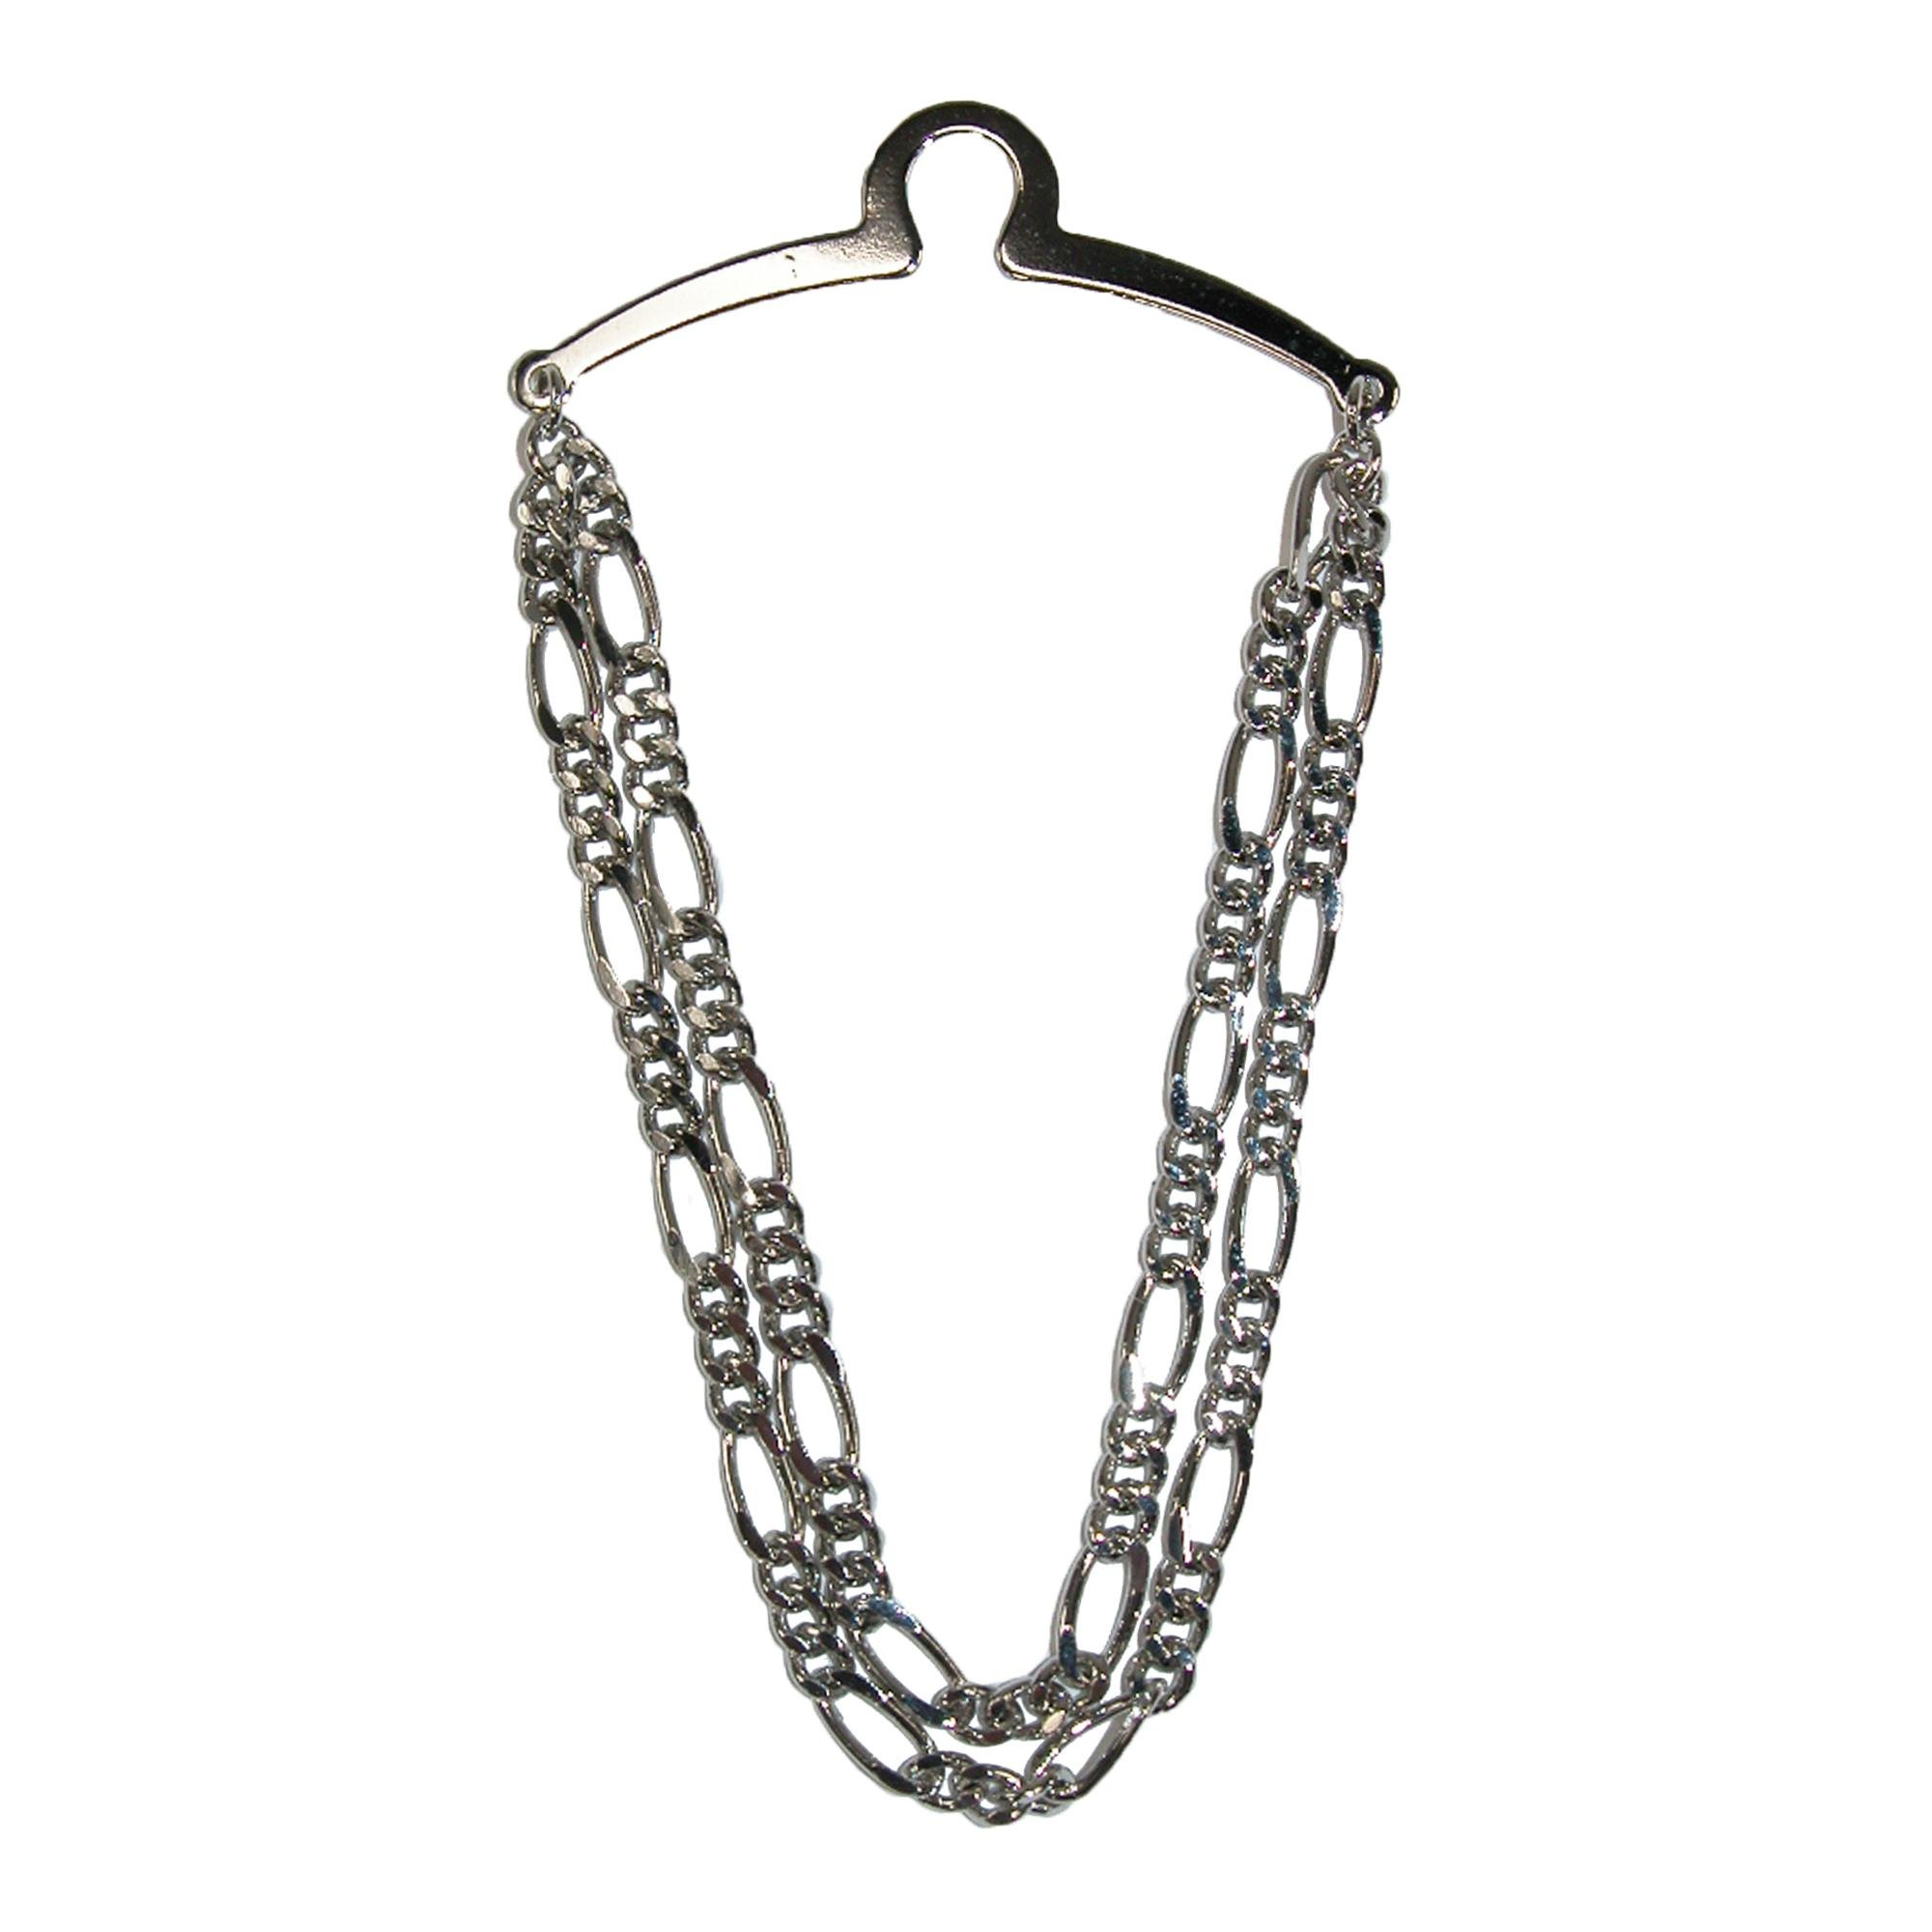 Competition Inc. Men's Double Link Tie Chain, Silver